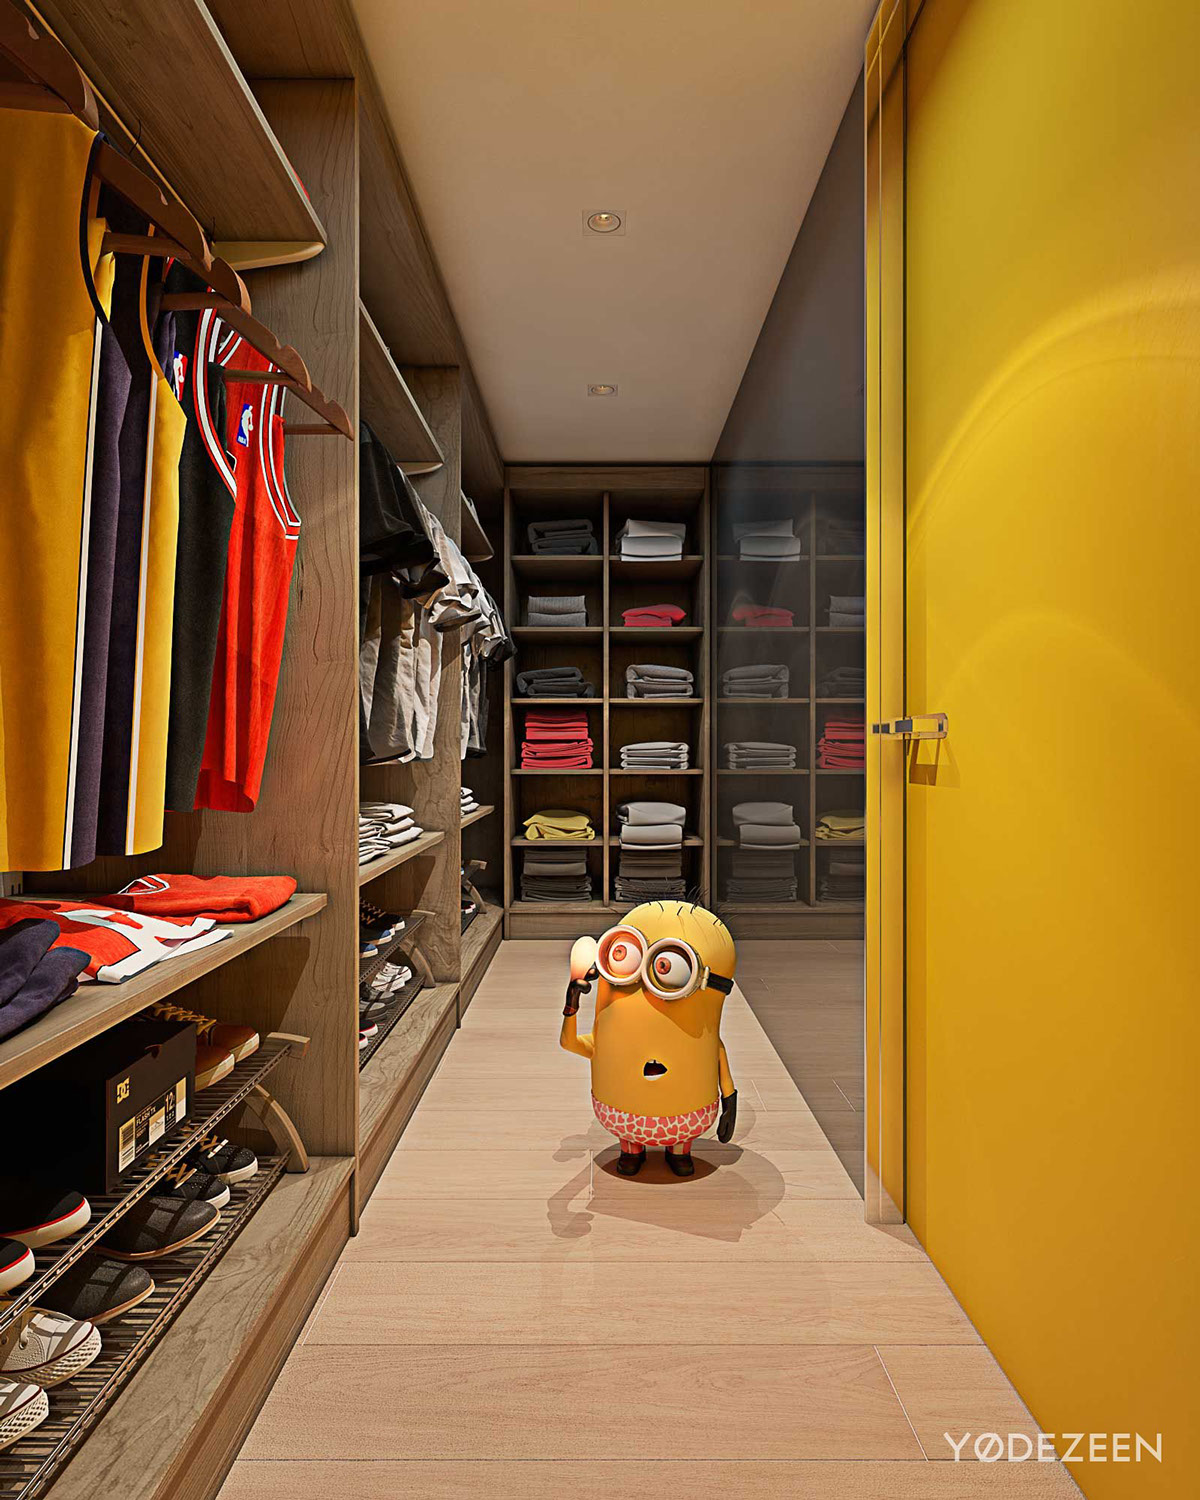 Cool Cozy Homes: A Kids Friendly Apartment Design With Lots Of Playful Features